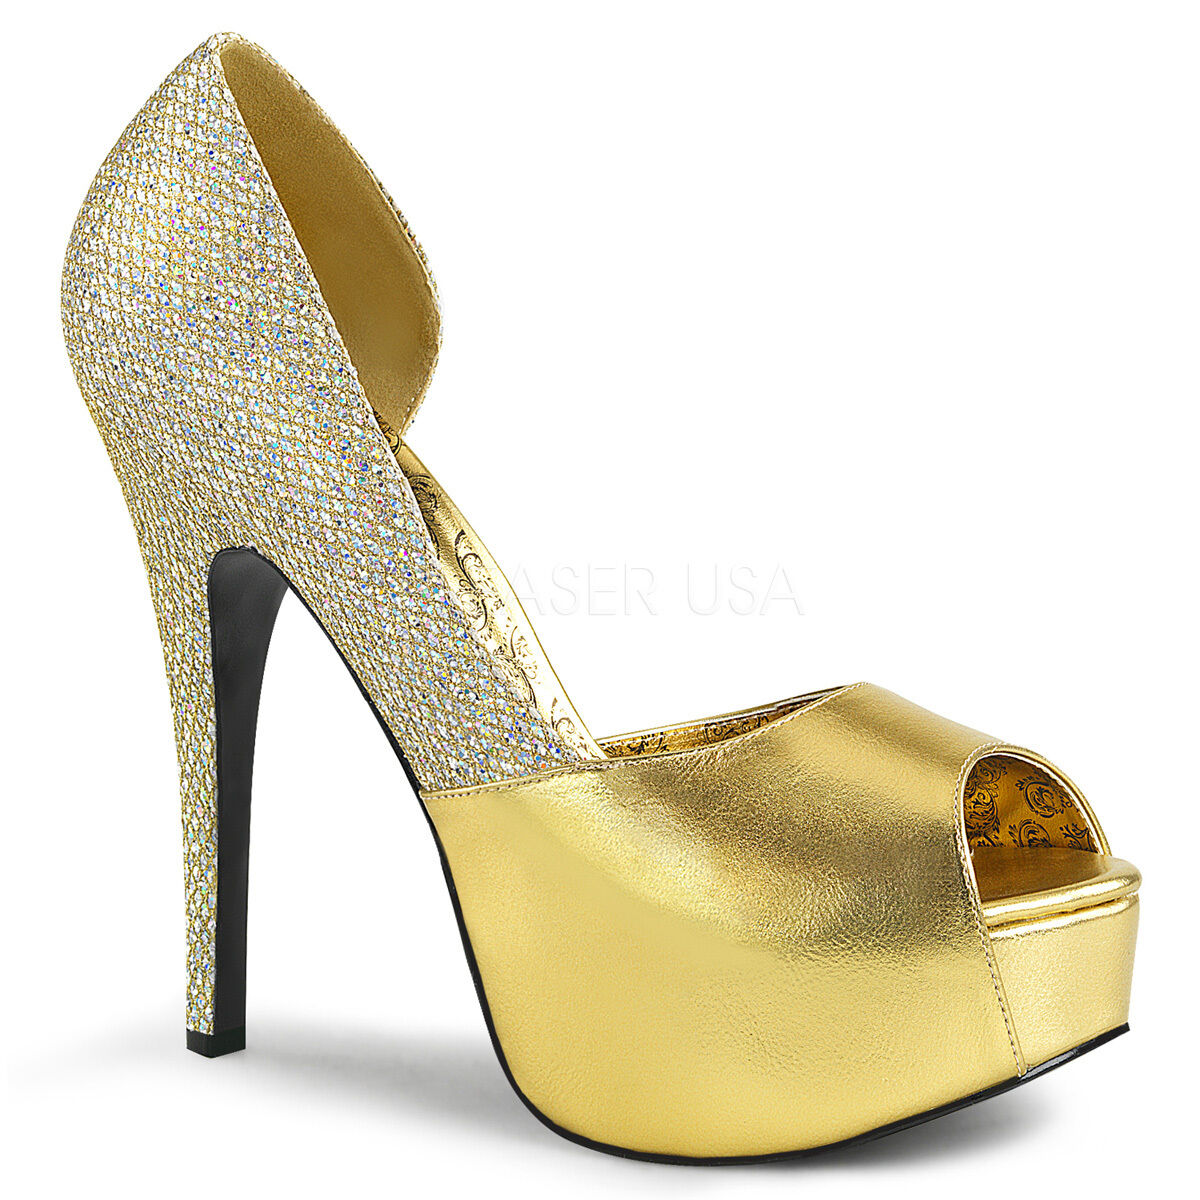 Sexy WIDE WIDTH Hidden Platform 5 3 4  Heel Peep Toe D'Orsay gold Pumps shoes